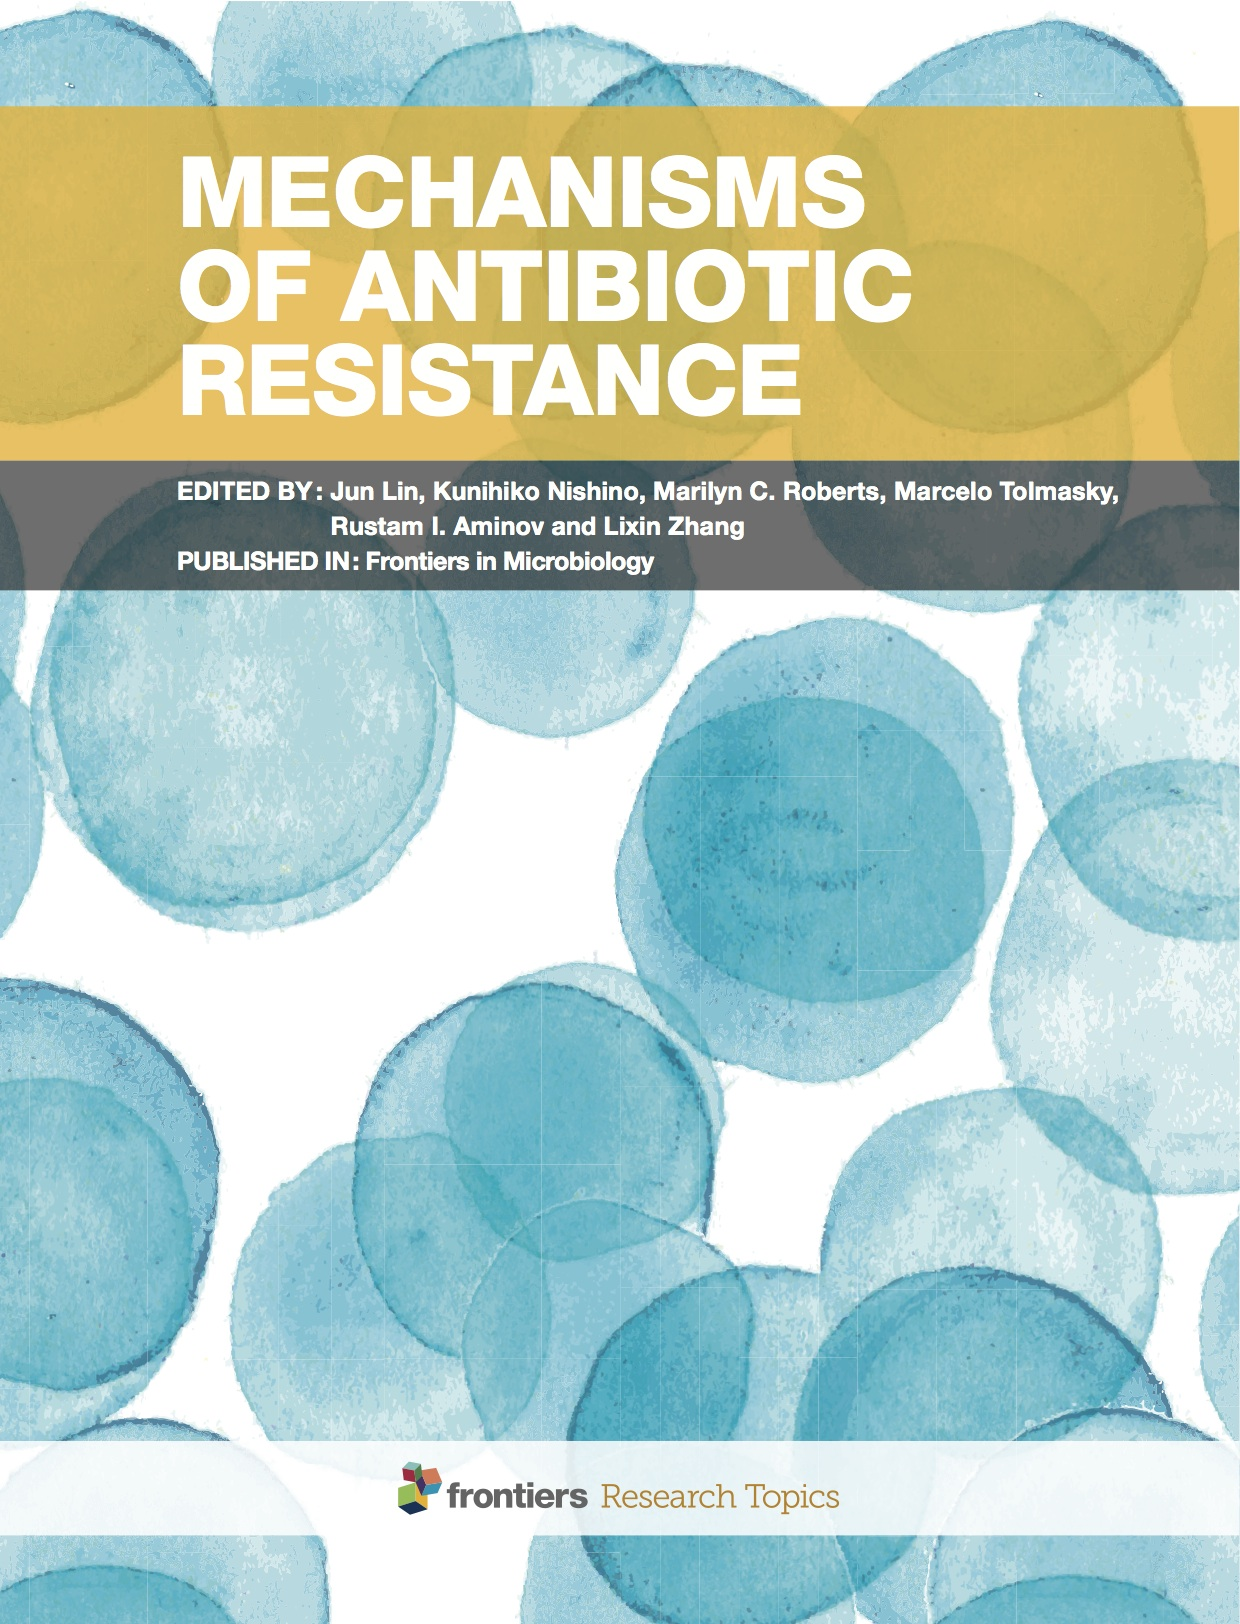 Virulence mechanisms of bacterial pathogens ebook open image in new window array marcelo tolmasky home rh biology fullerton edu cover of ebook entitled mechanisms of antibiotic resistance array pdf fandeluxe Choice Image